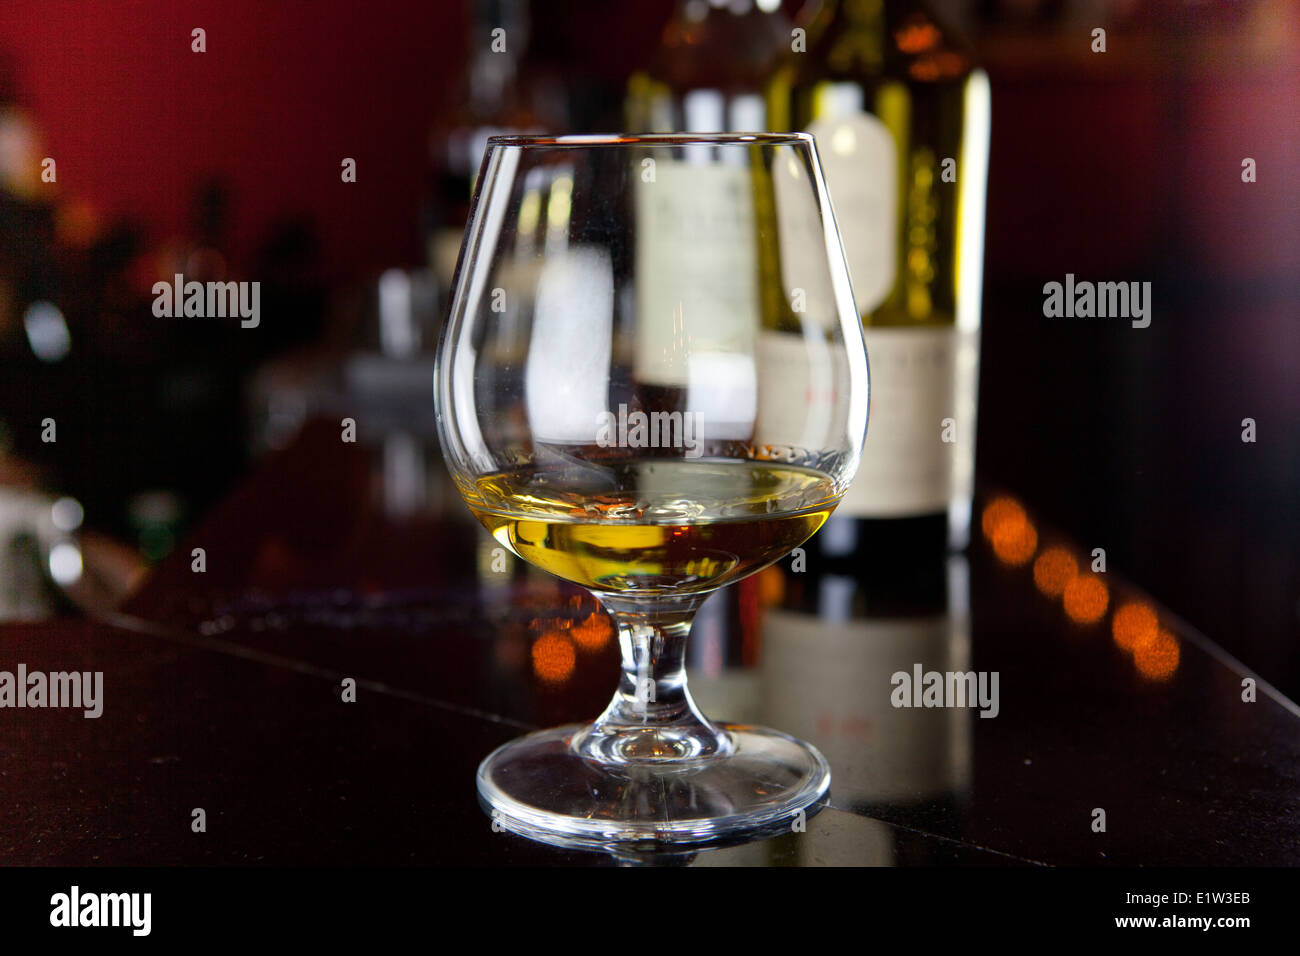 Glass of Whisky - Stock Image